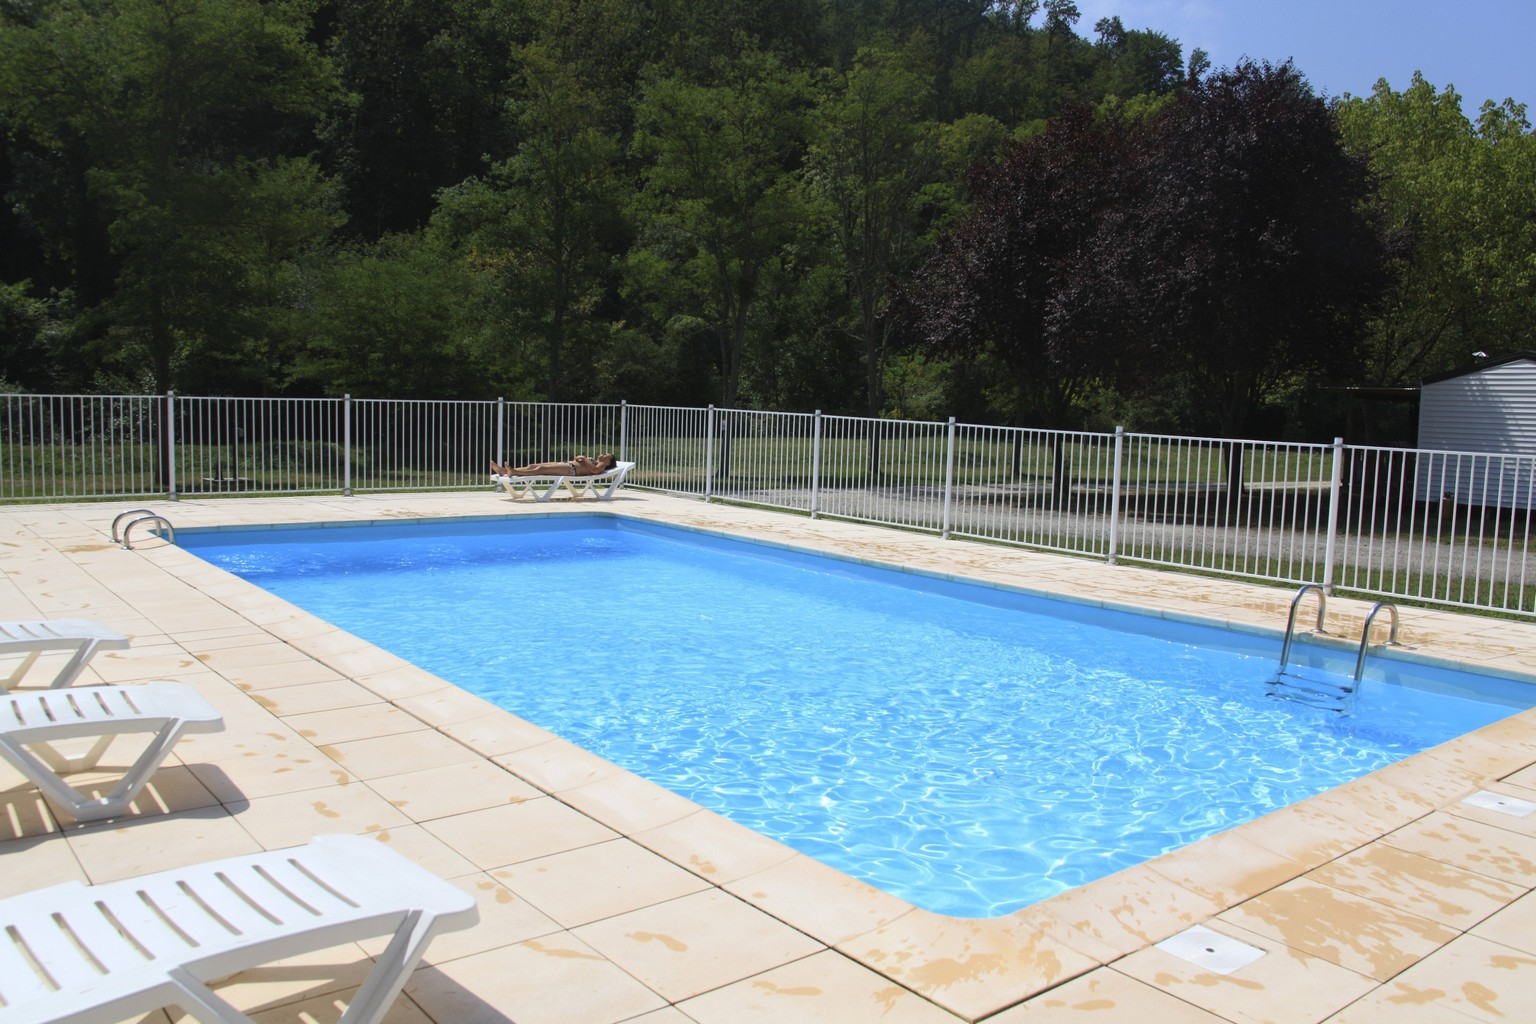 Barri res de protection de piscine faire le bon choix - Ideal protection piscine ...